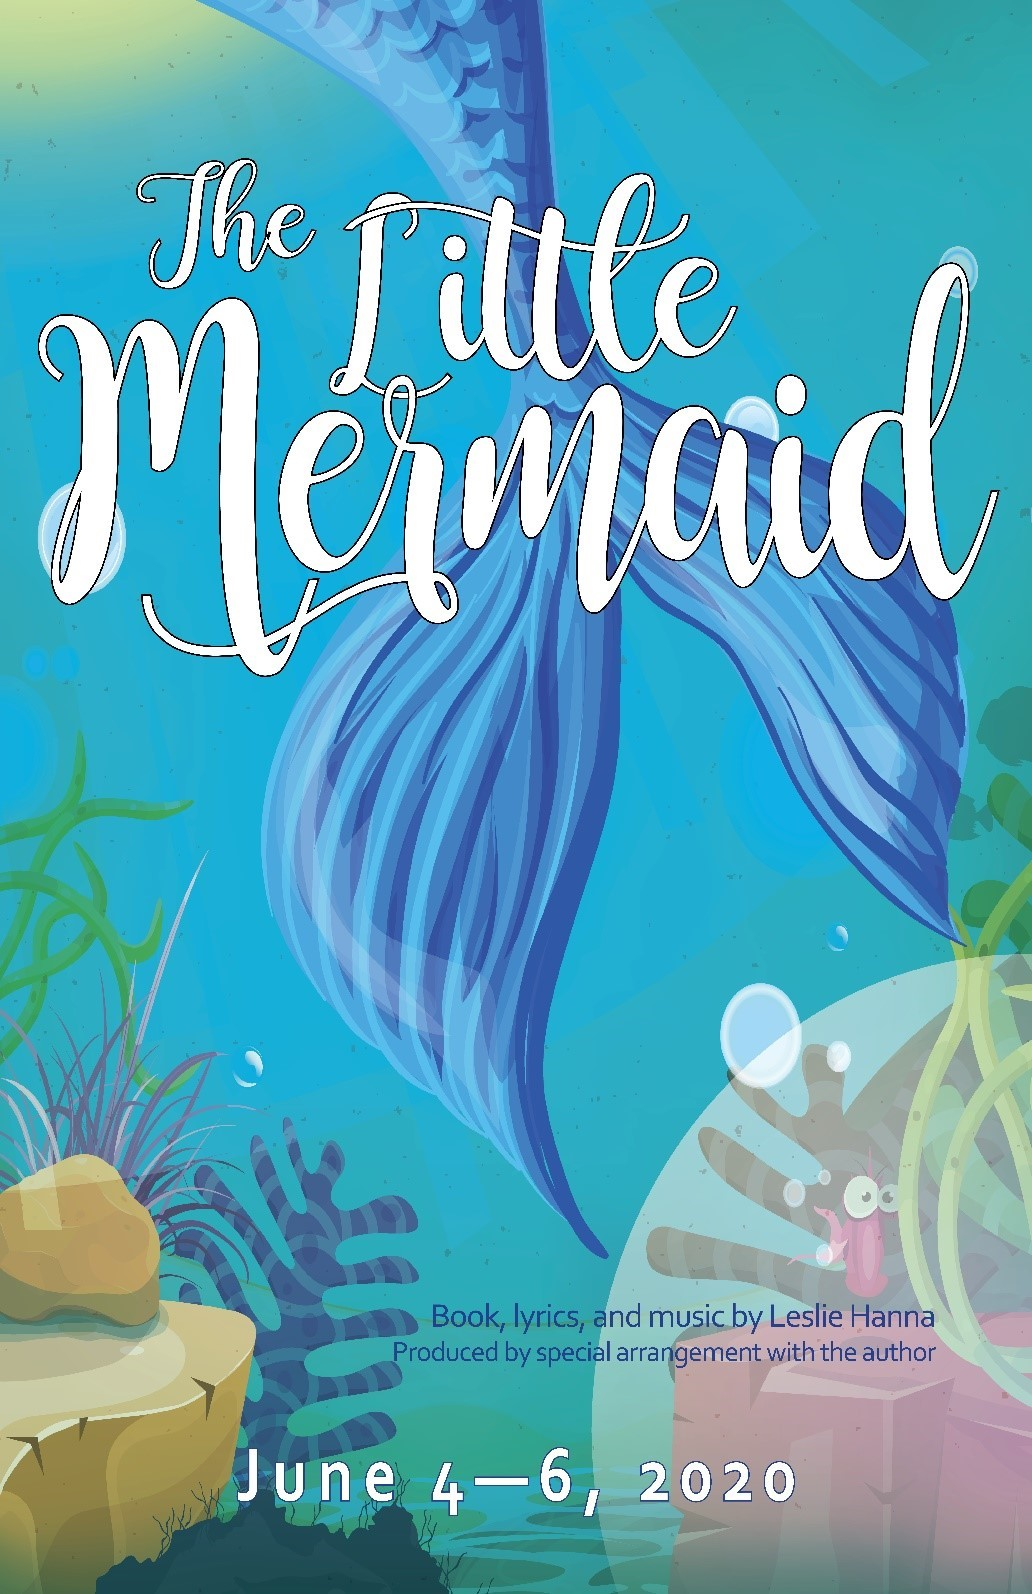 The Little Mermaid Thursday, June 4, 2020 @ 7:30 pm on Jun 04, 19:30@Spiritual Twist Productions - Pick a seat, Buy tickets and Get information on Spiritual Twist Productions tickets.spiritualtwist.com